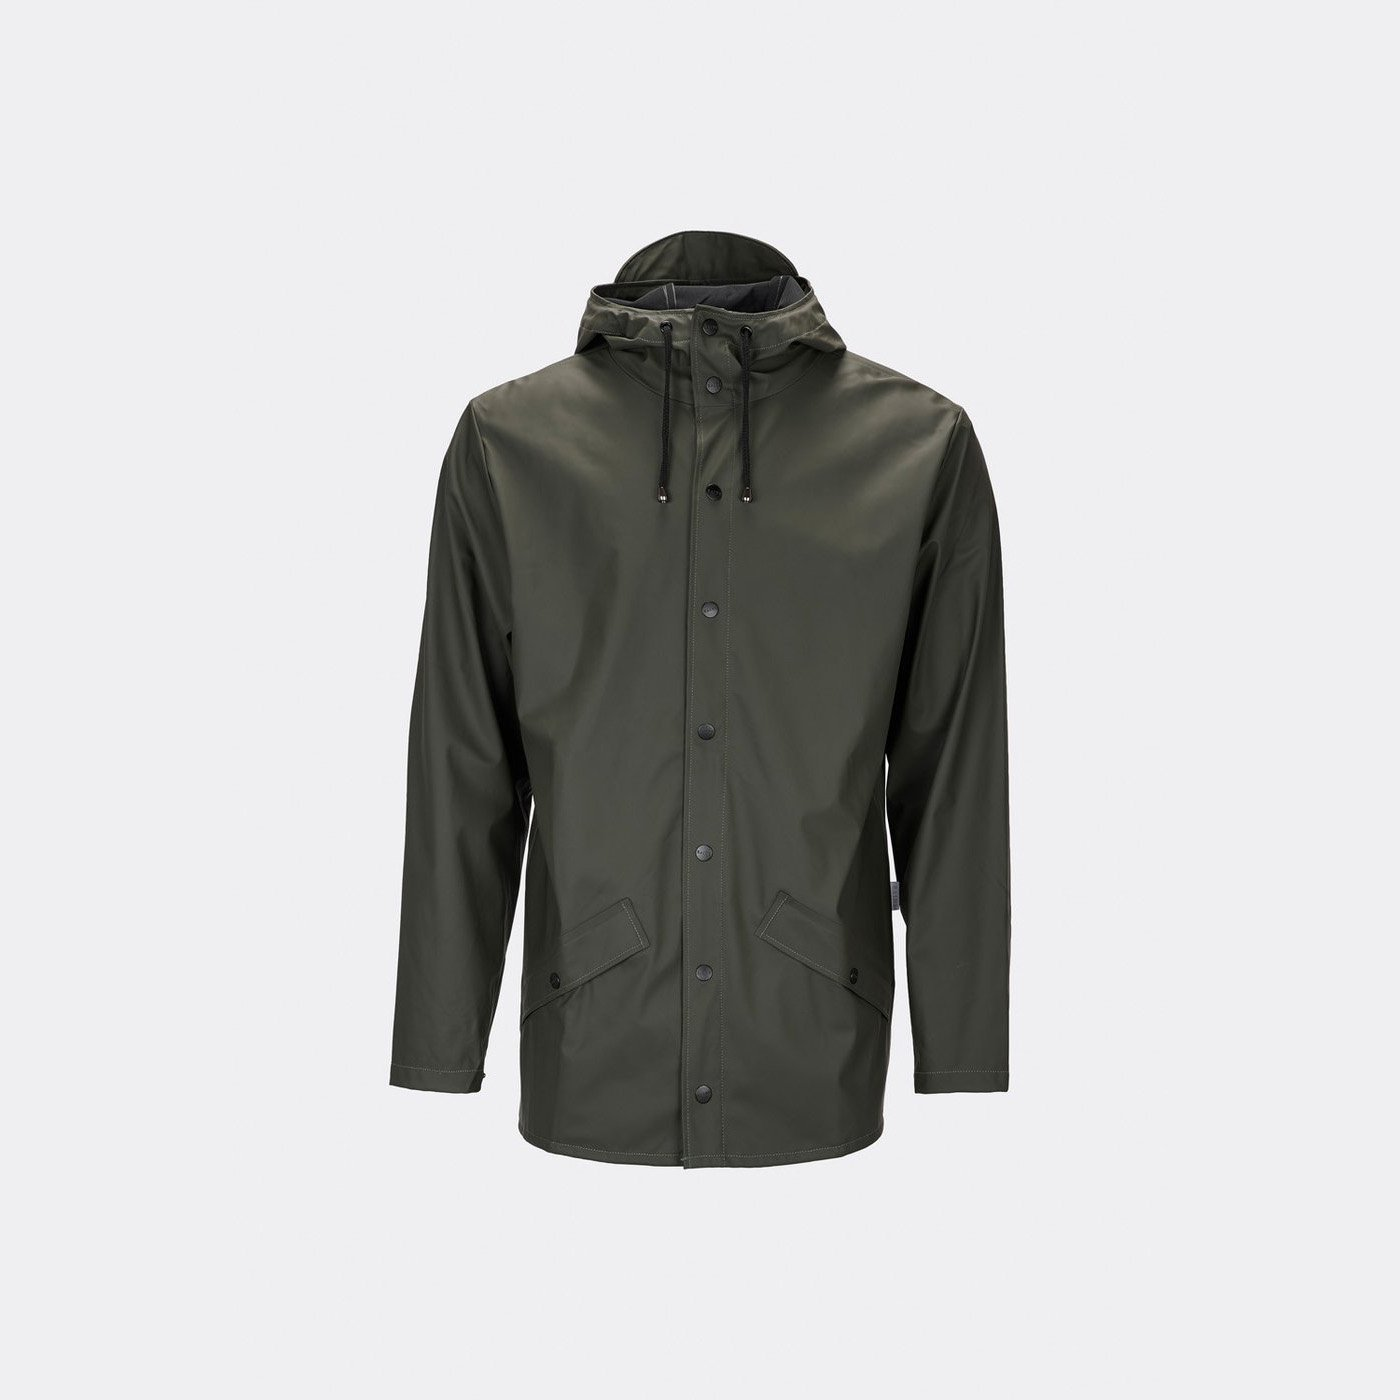 Jacket - Rains Jacket Green